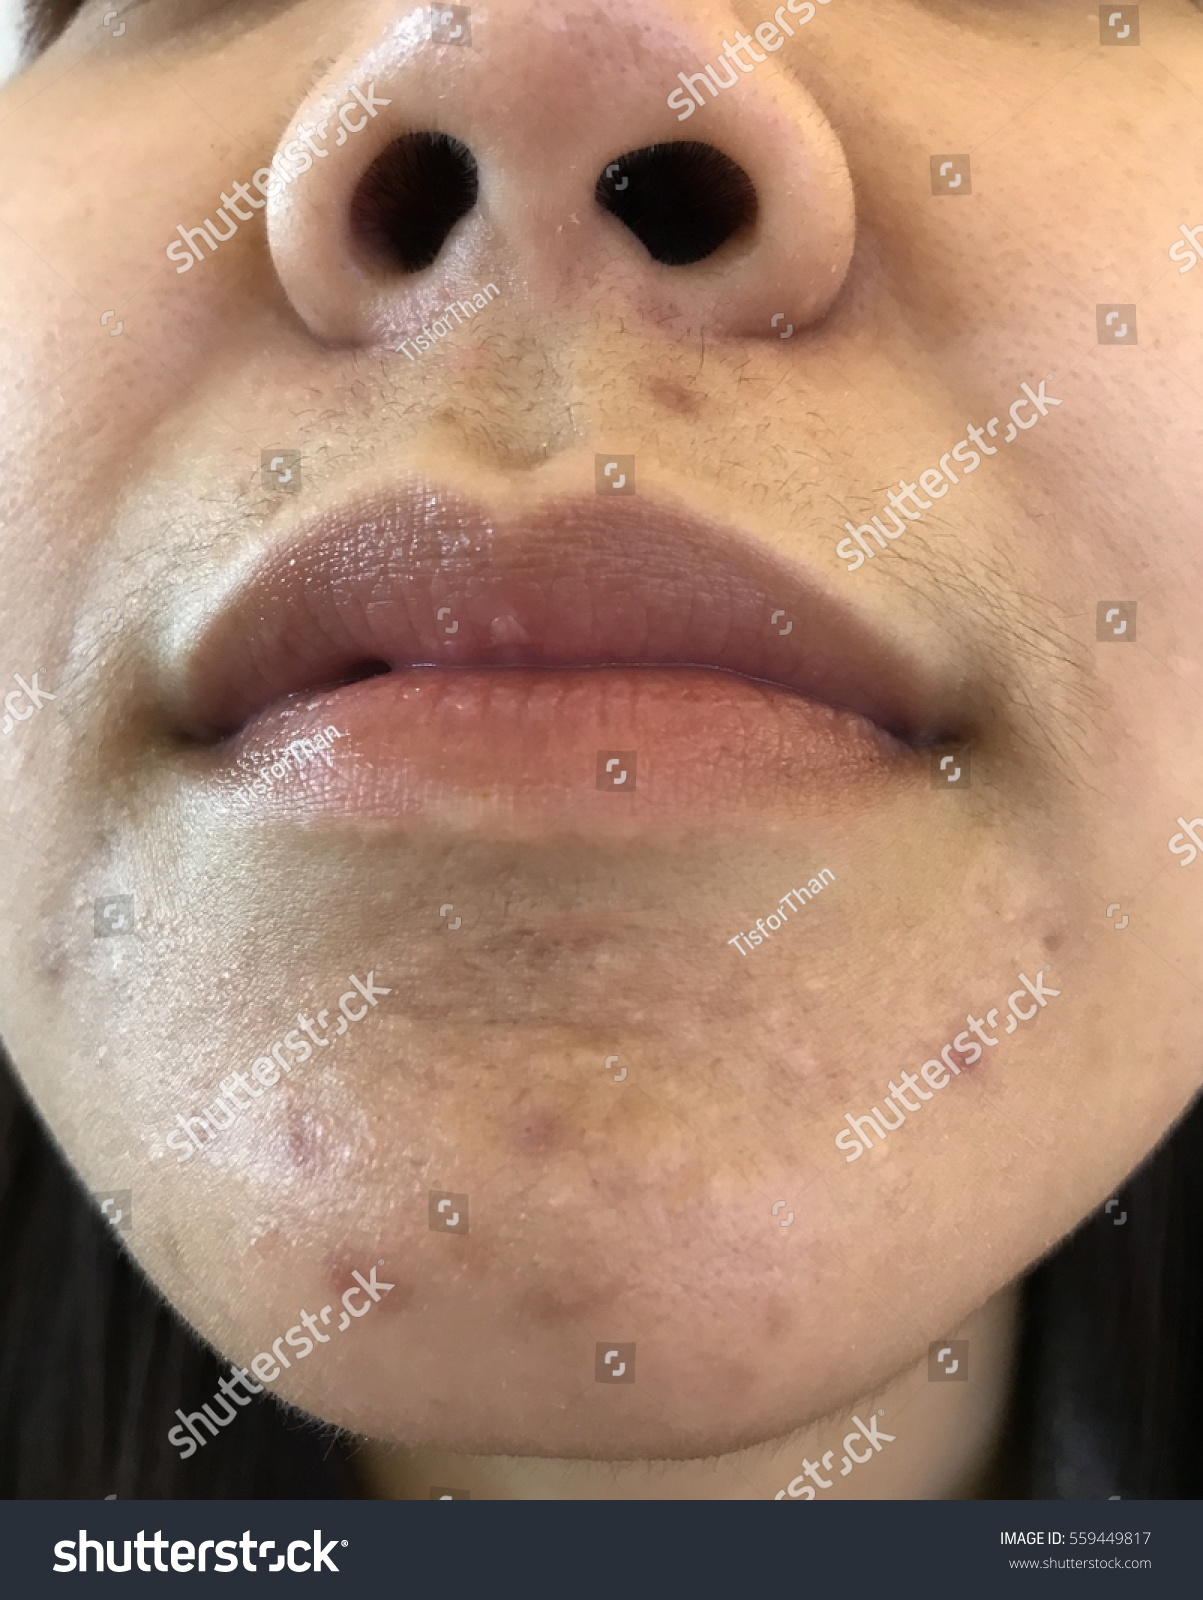 acne on lips